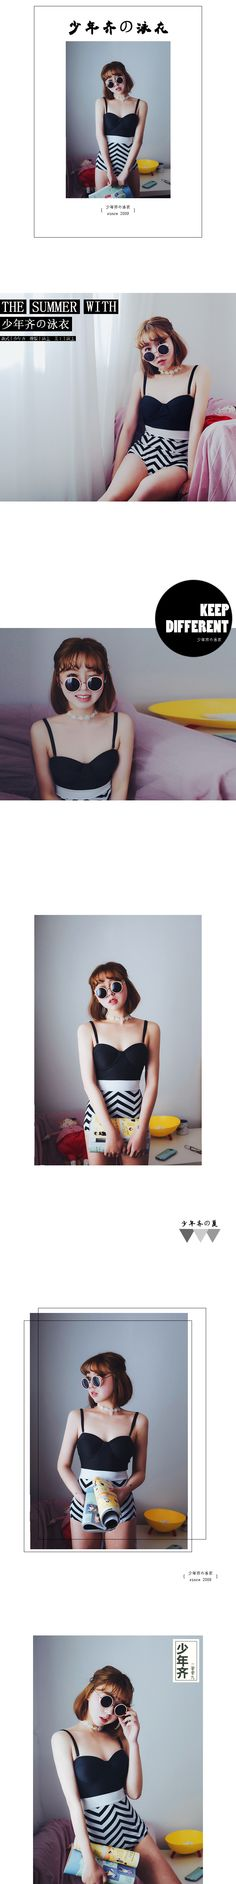 Qi juvenile black and white hit color wave high waist was thin steel prop gather swimsuit female spa triangle piece swimsuit - Taobao